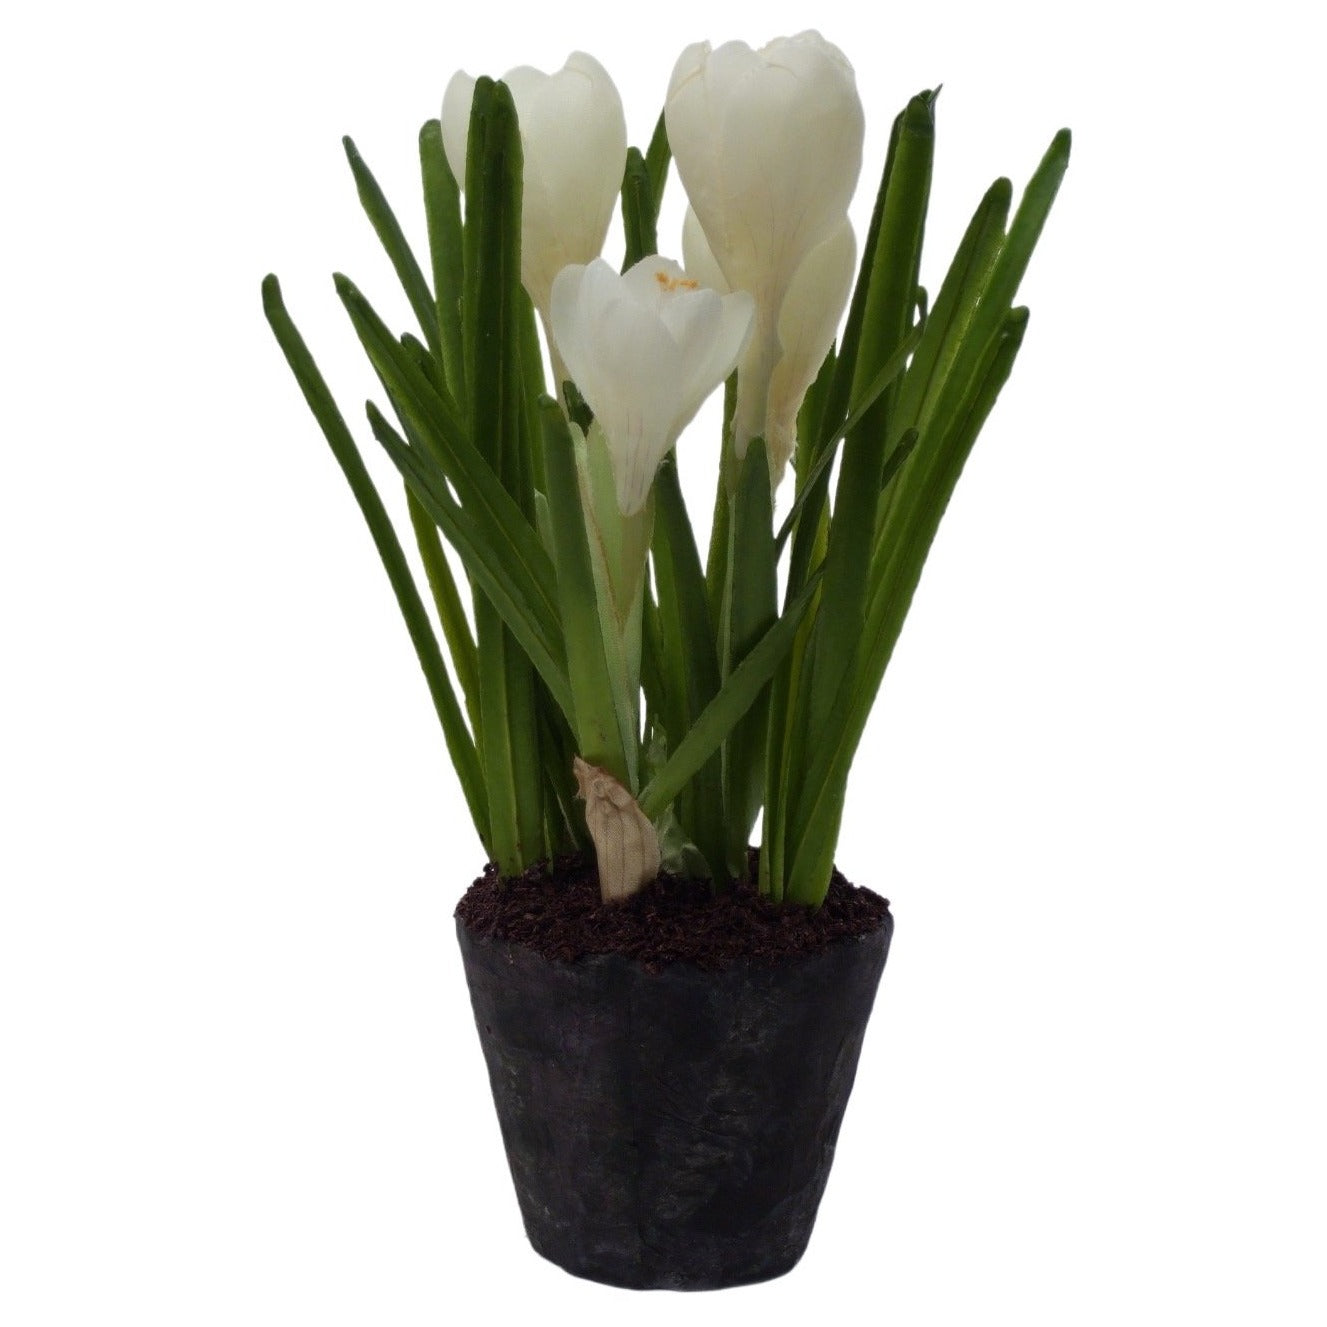 4 Bulb Crocus in Soil in White